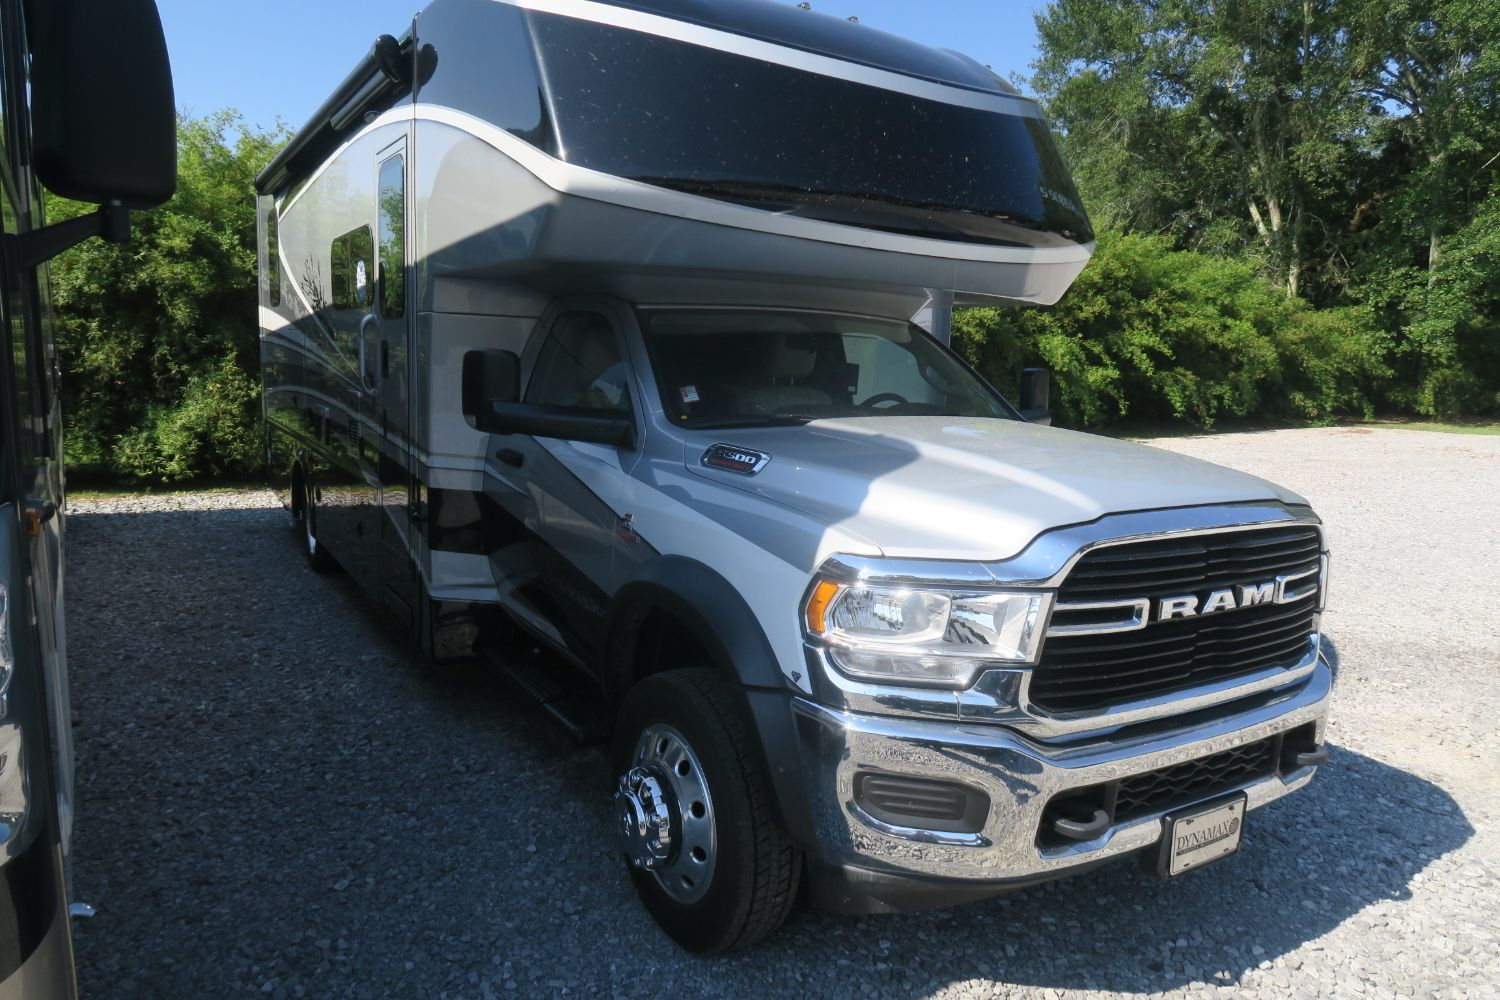 New 2021 Isata 5 Dodge Cummins 30fwd Overview Berryland Campers